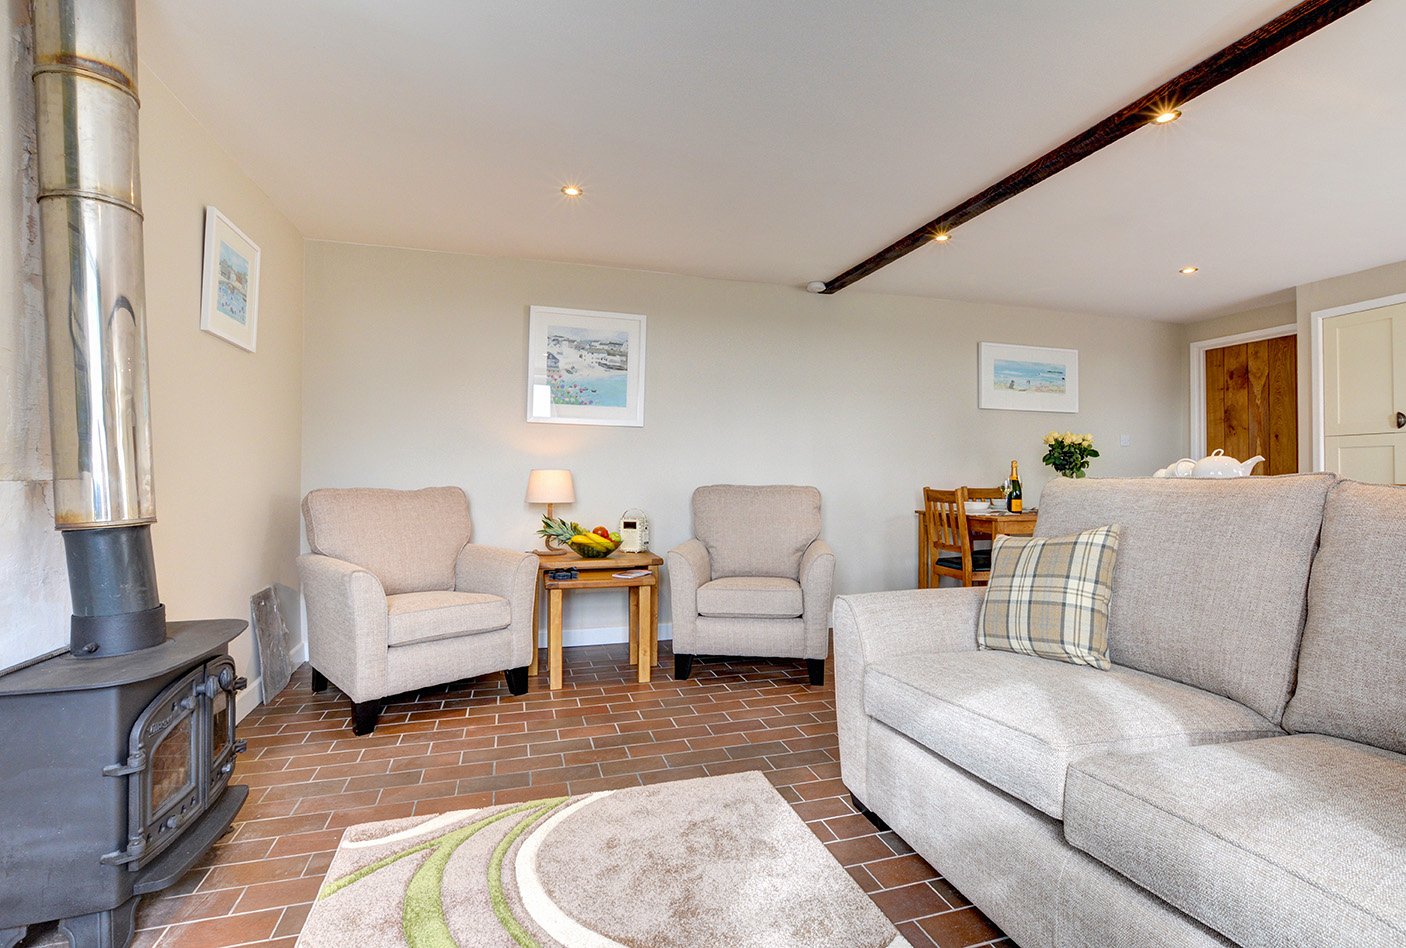 The lounge of Butterwell luxury self catering converted barn holiday cottage at Penrose Burden in North Cornwall 01.jpg